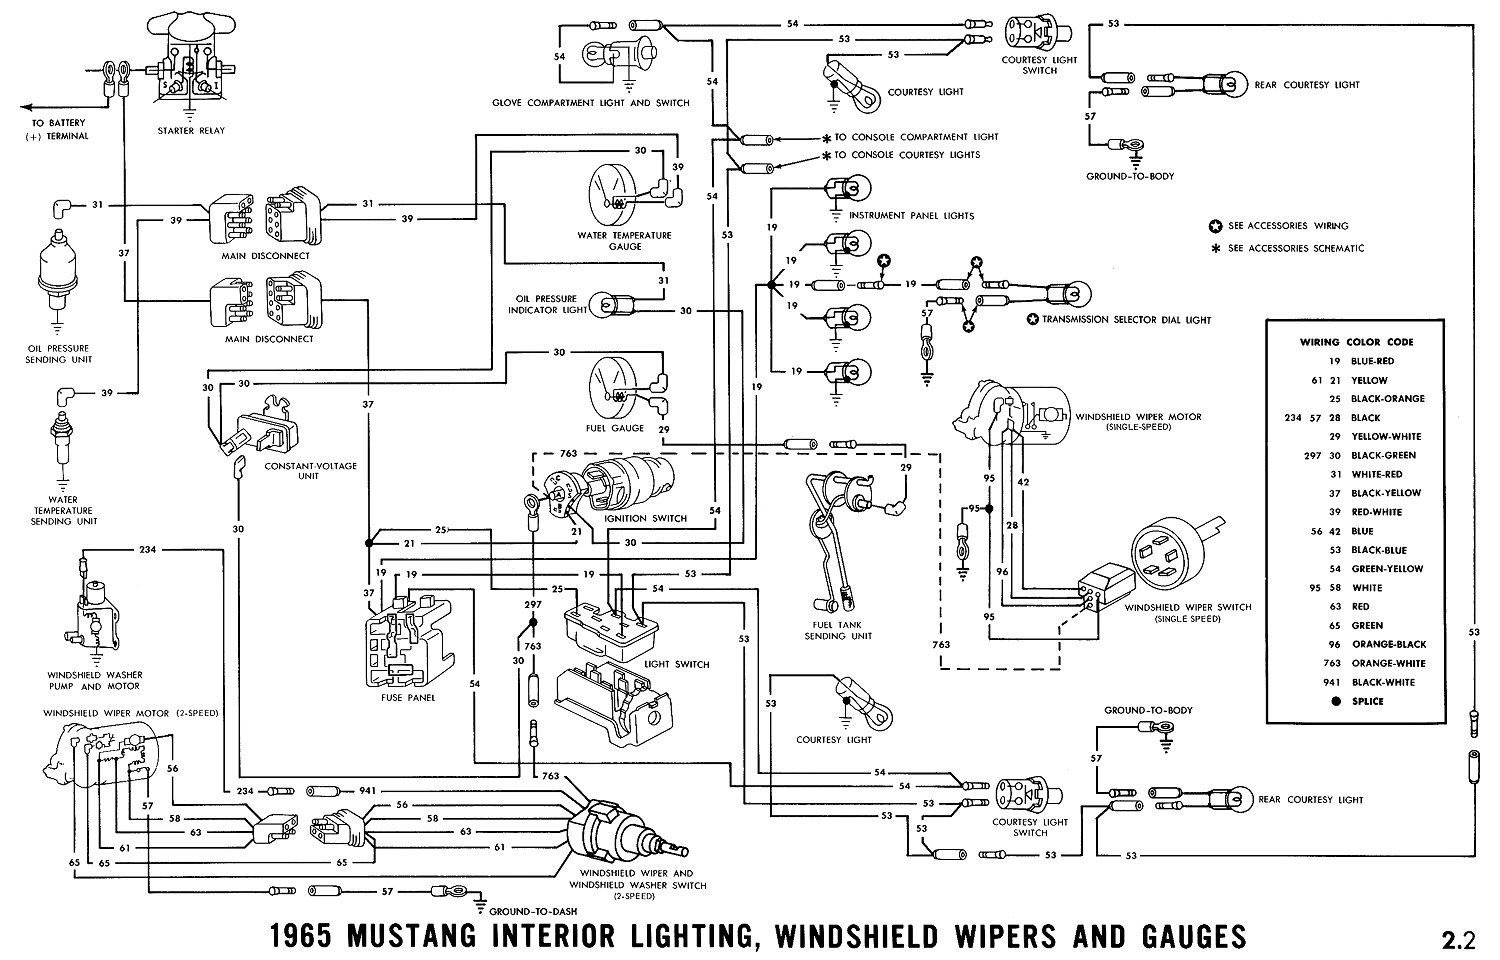 1965g 1965 mustang wiring diagrams average joe restoration 1967 mustang wiring diagram at gsmportal.co